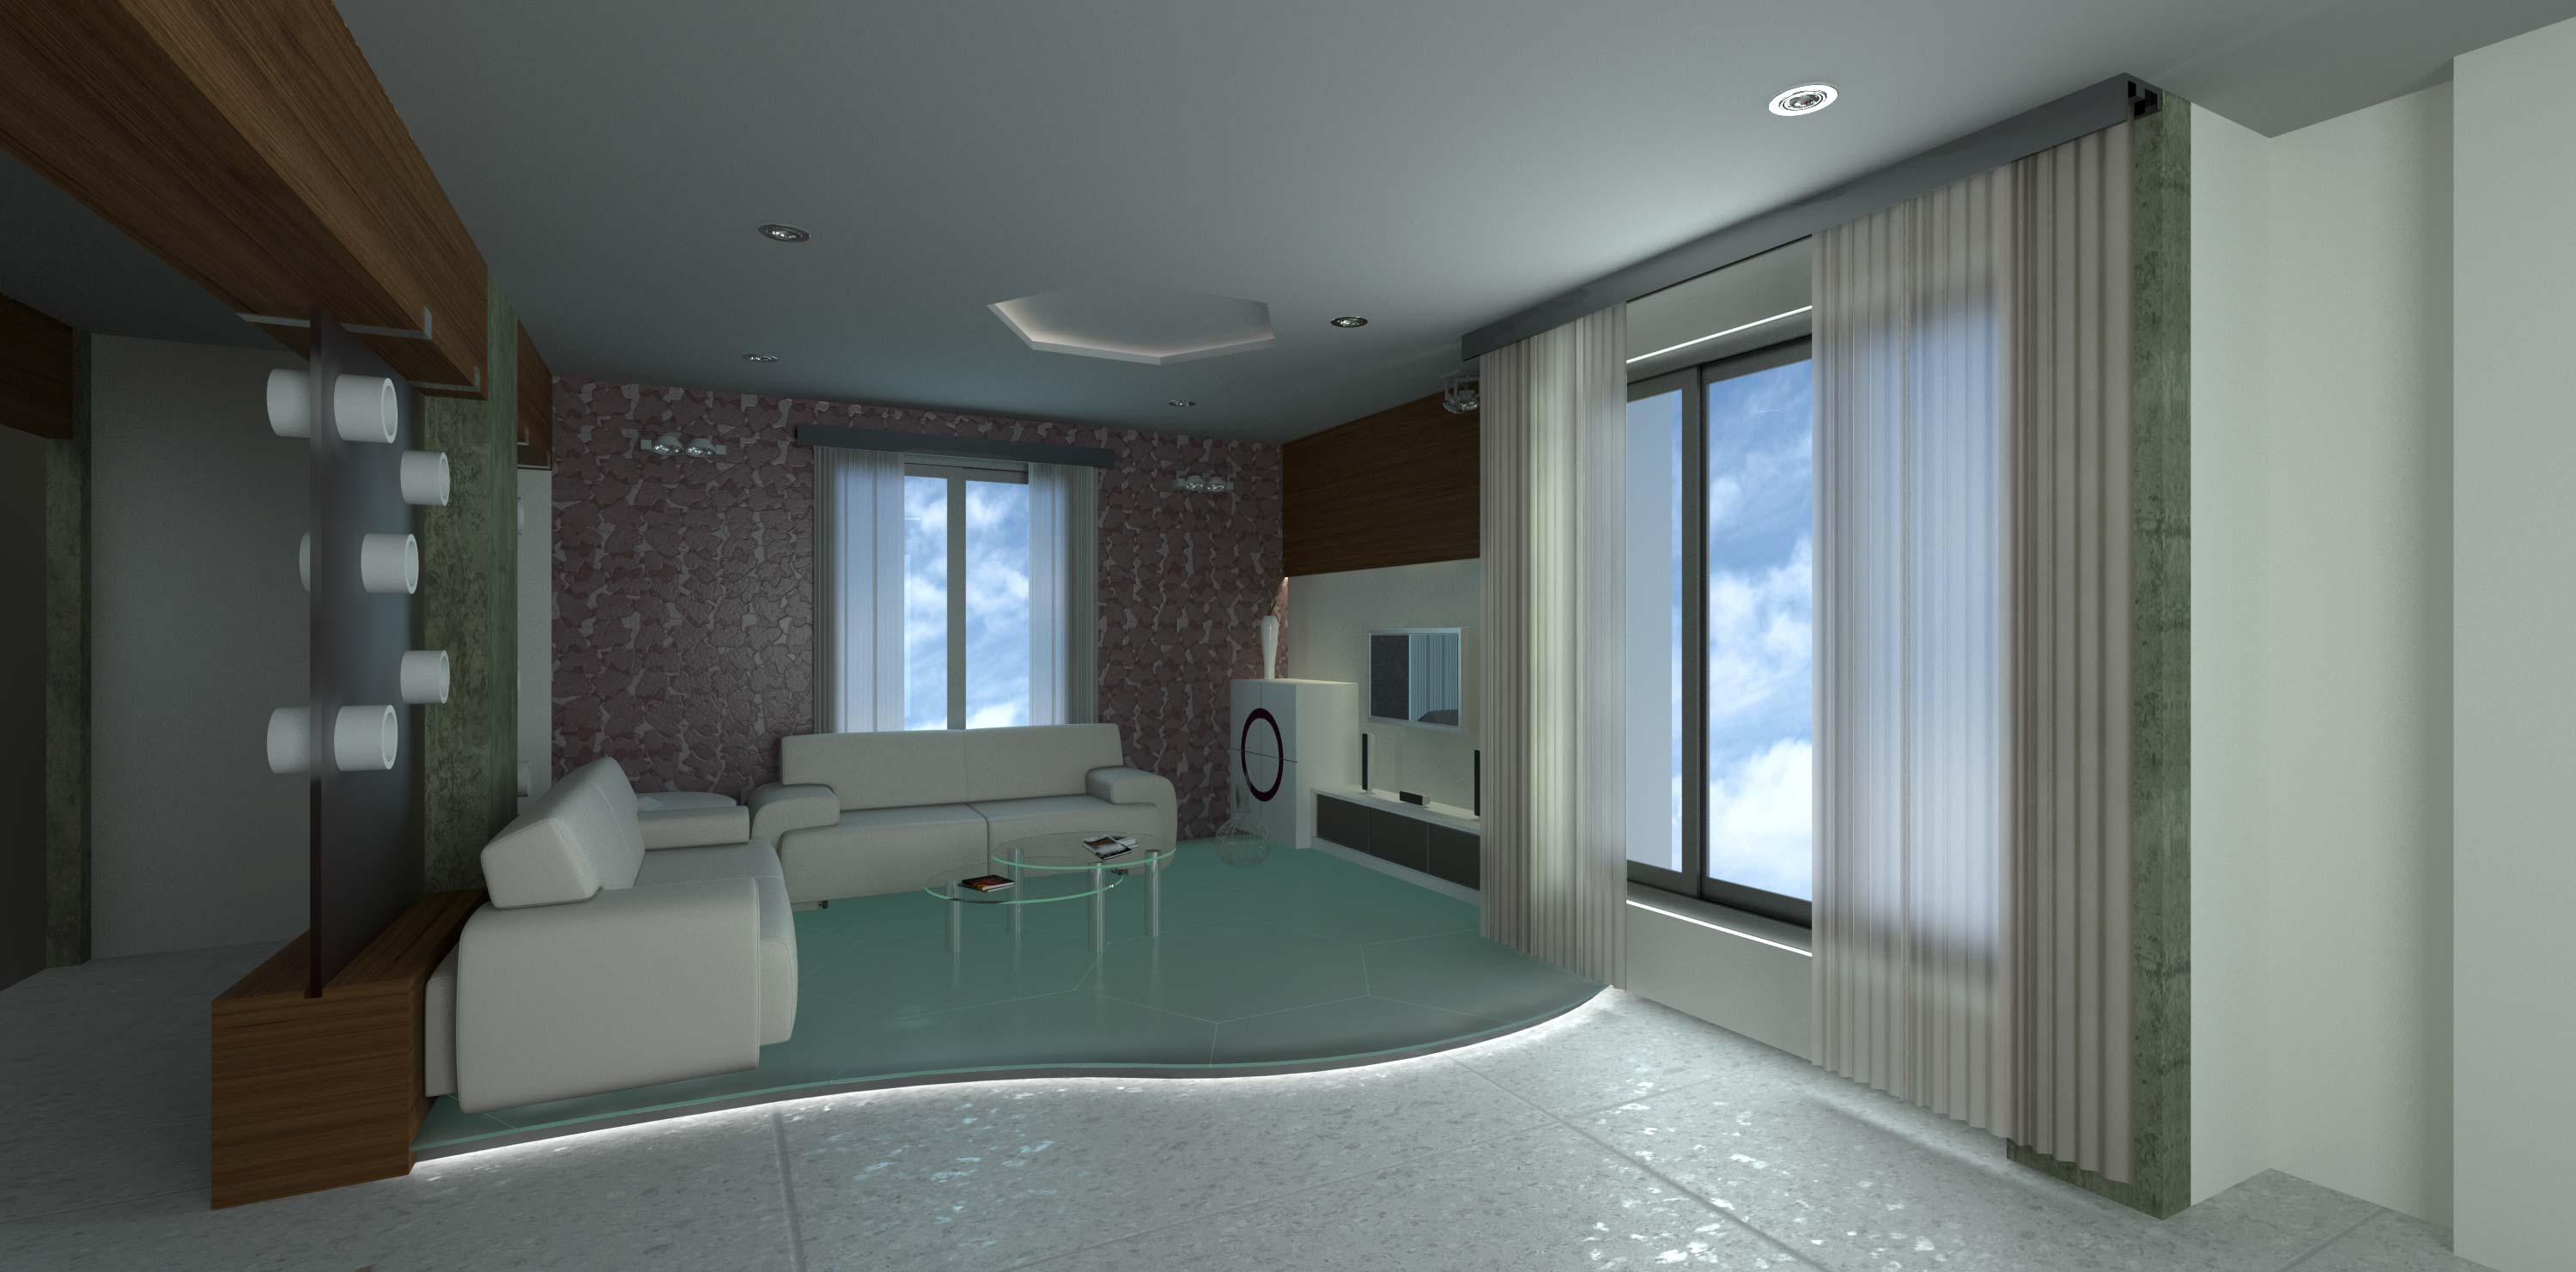 HD wallpapers interior by design